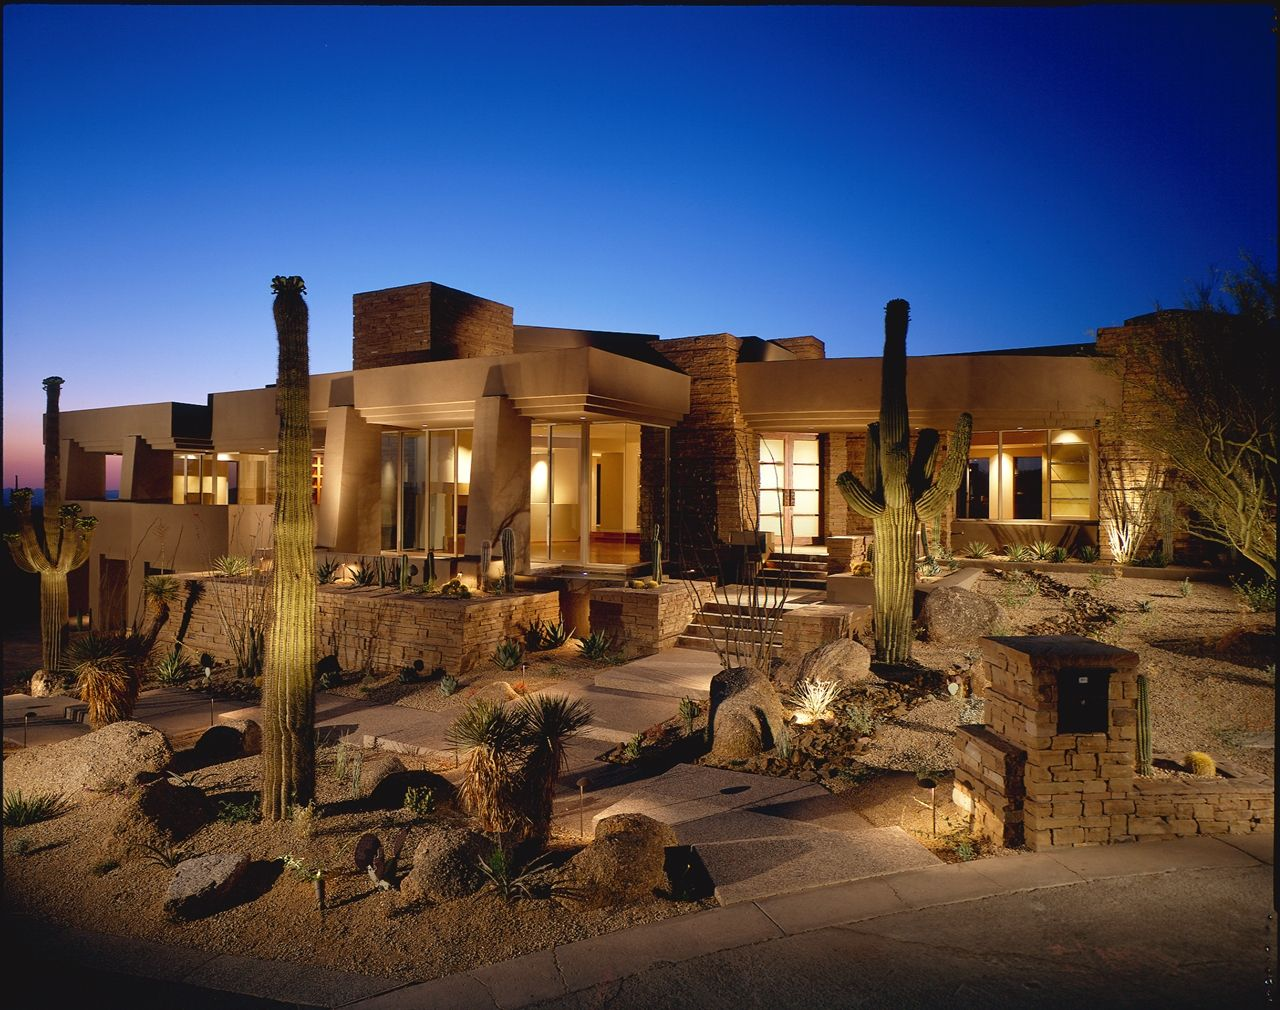 Scotsdale Arizona Luxury Life In The Nature Scottsdale - Luxury homes in scottsdale az